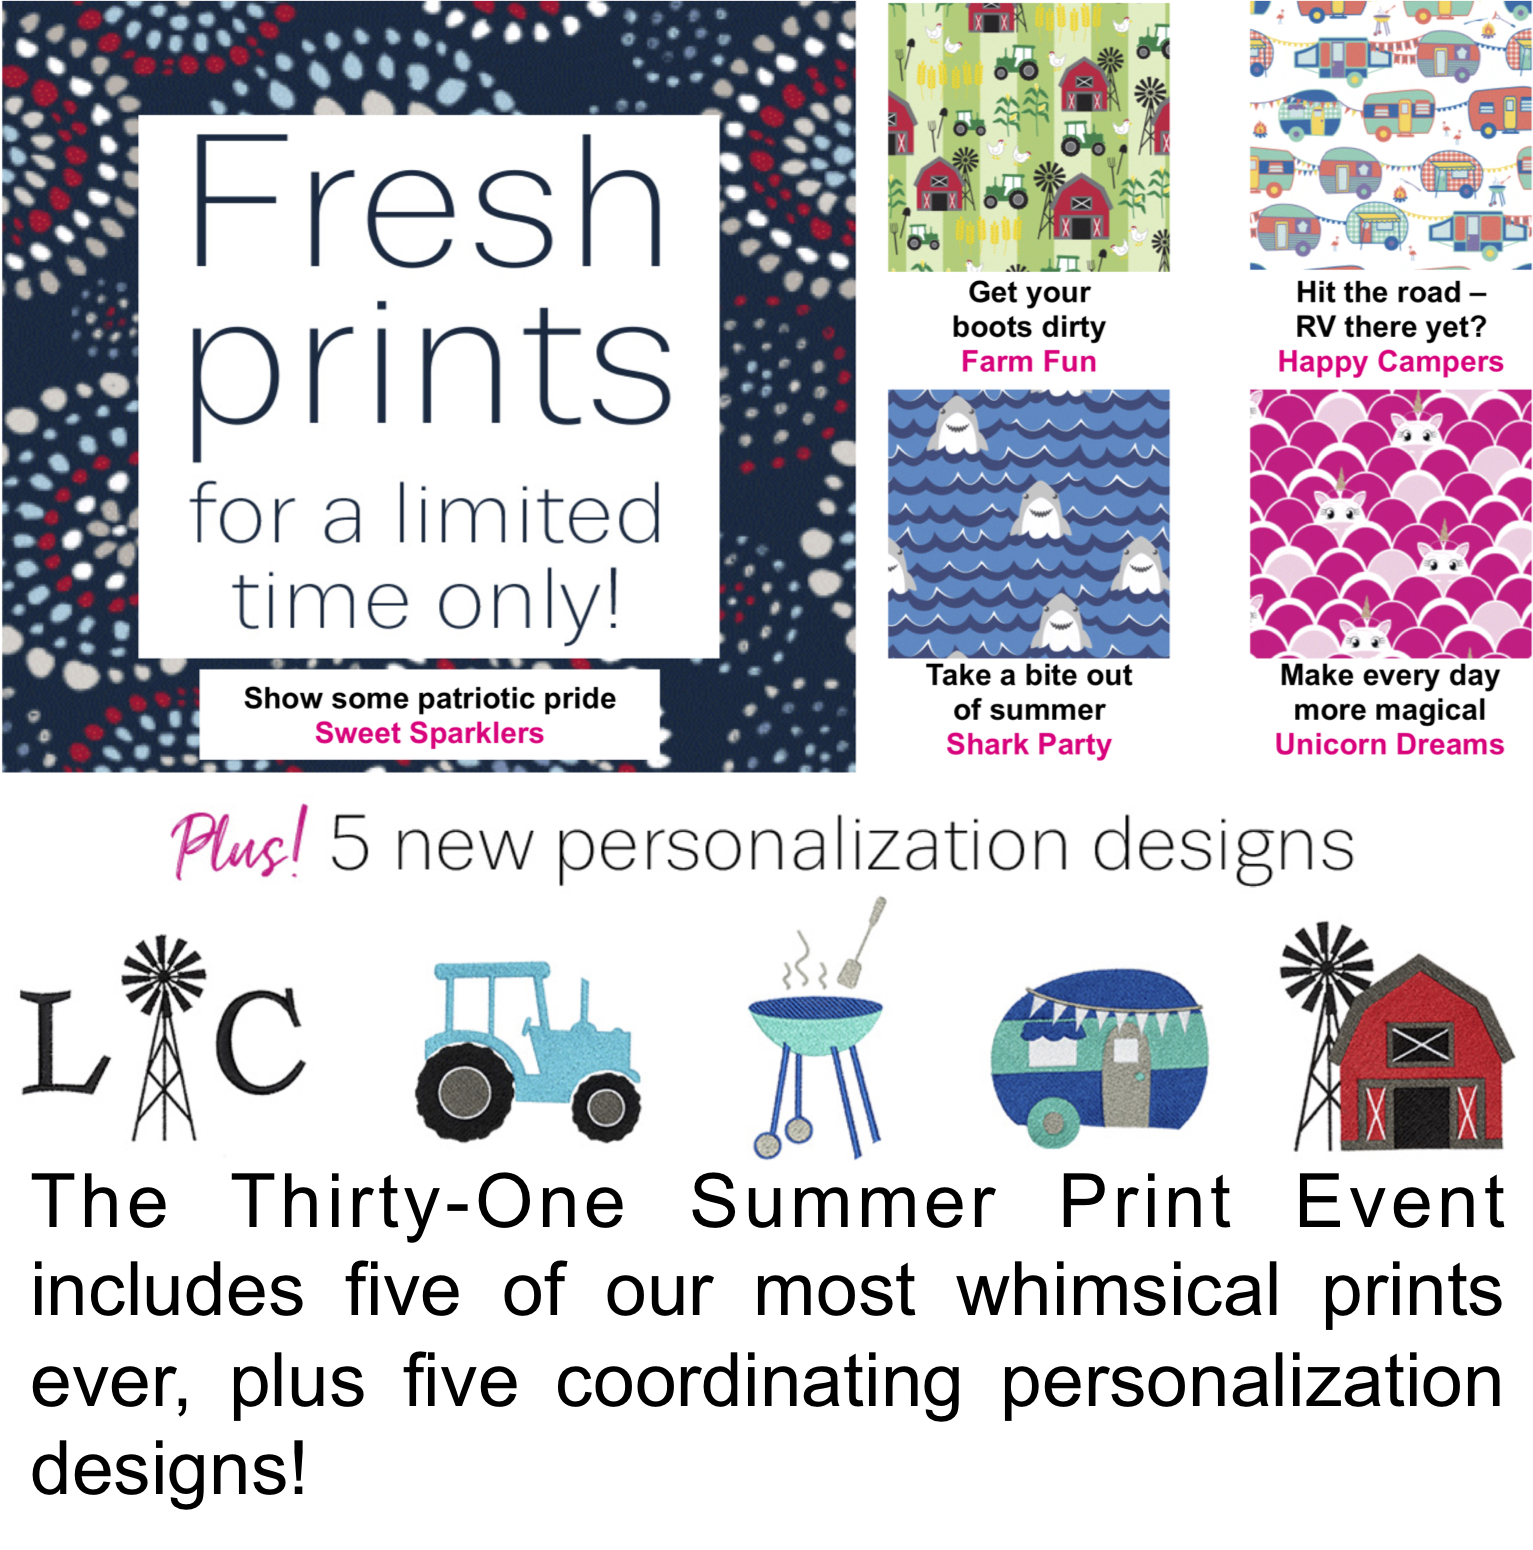 Thirty-One Summer Print Event